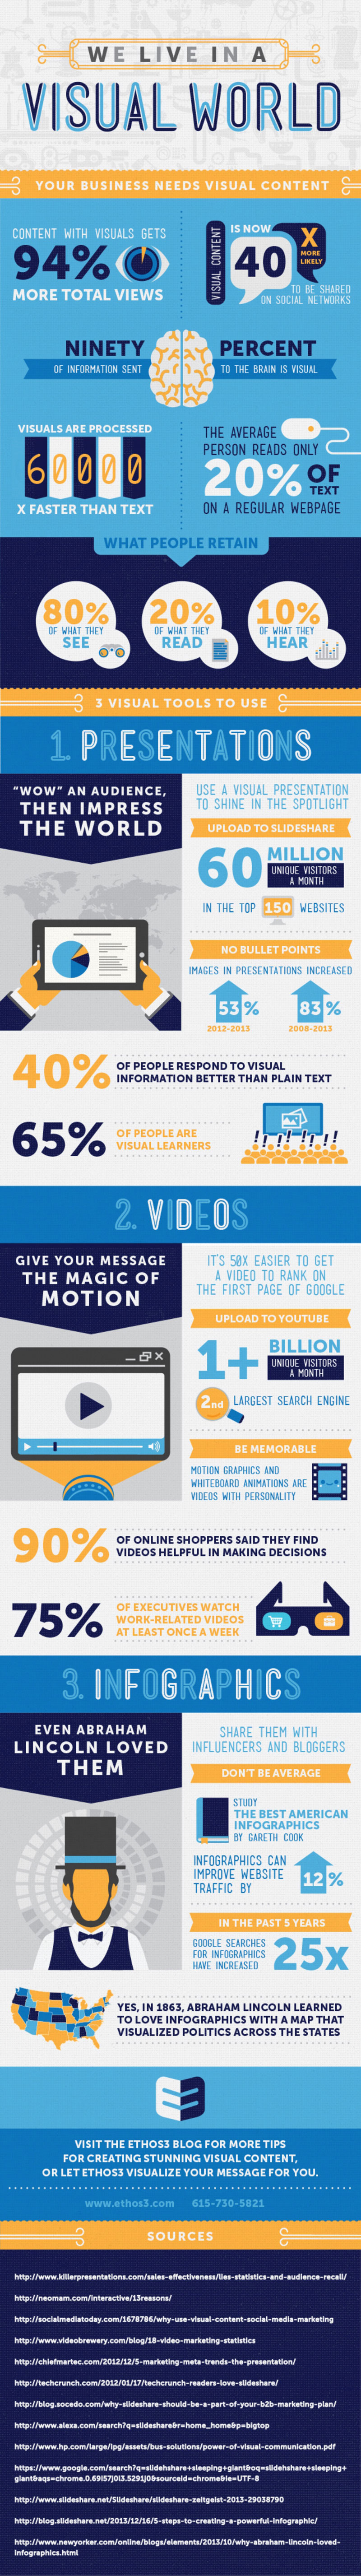 Infographic: Why Visual Design is Important